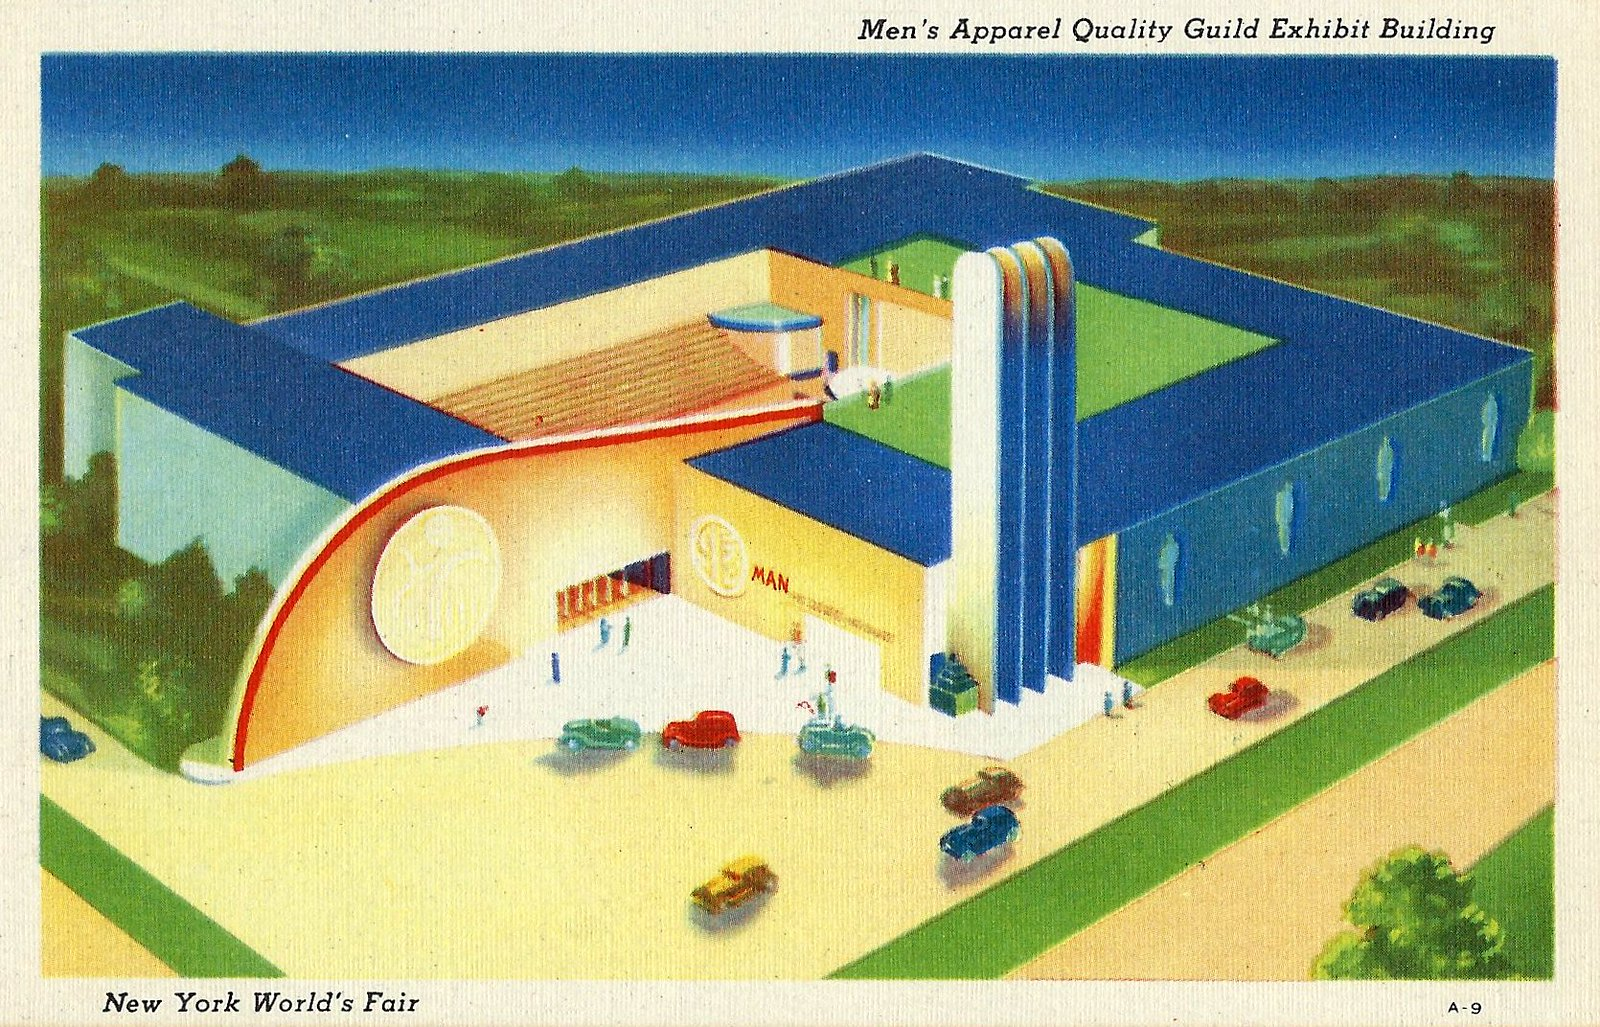 The 1939 New York Worlds Fair Postcard (Building The World Of Tomorrow) - The Men's Apparel Quality Guild Exhibit Building